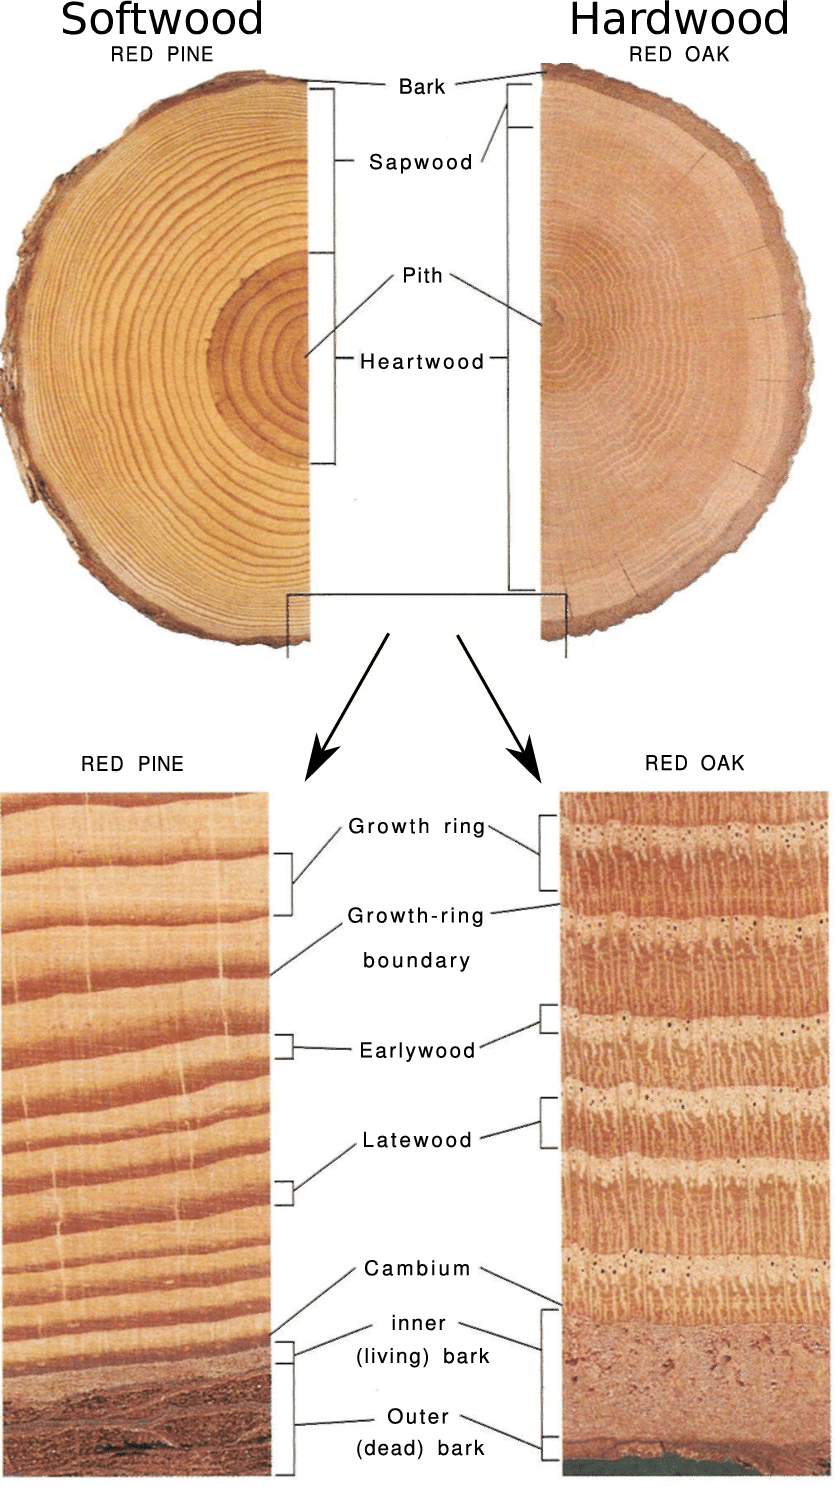 hight resolution of illustration of tree stem and annual growth rings closest to the pith download scientific diagram